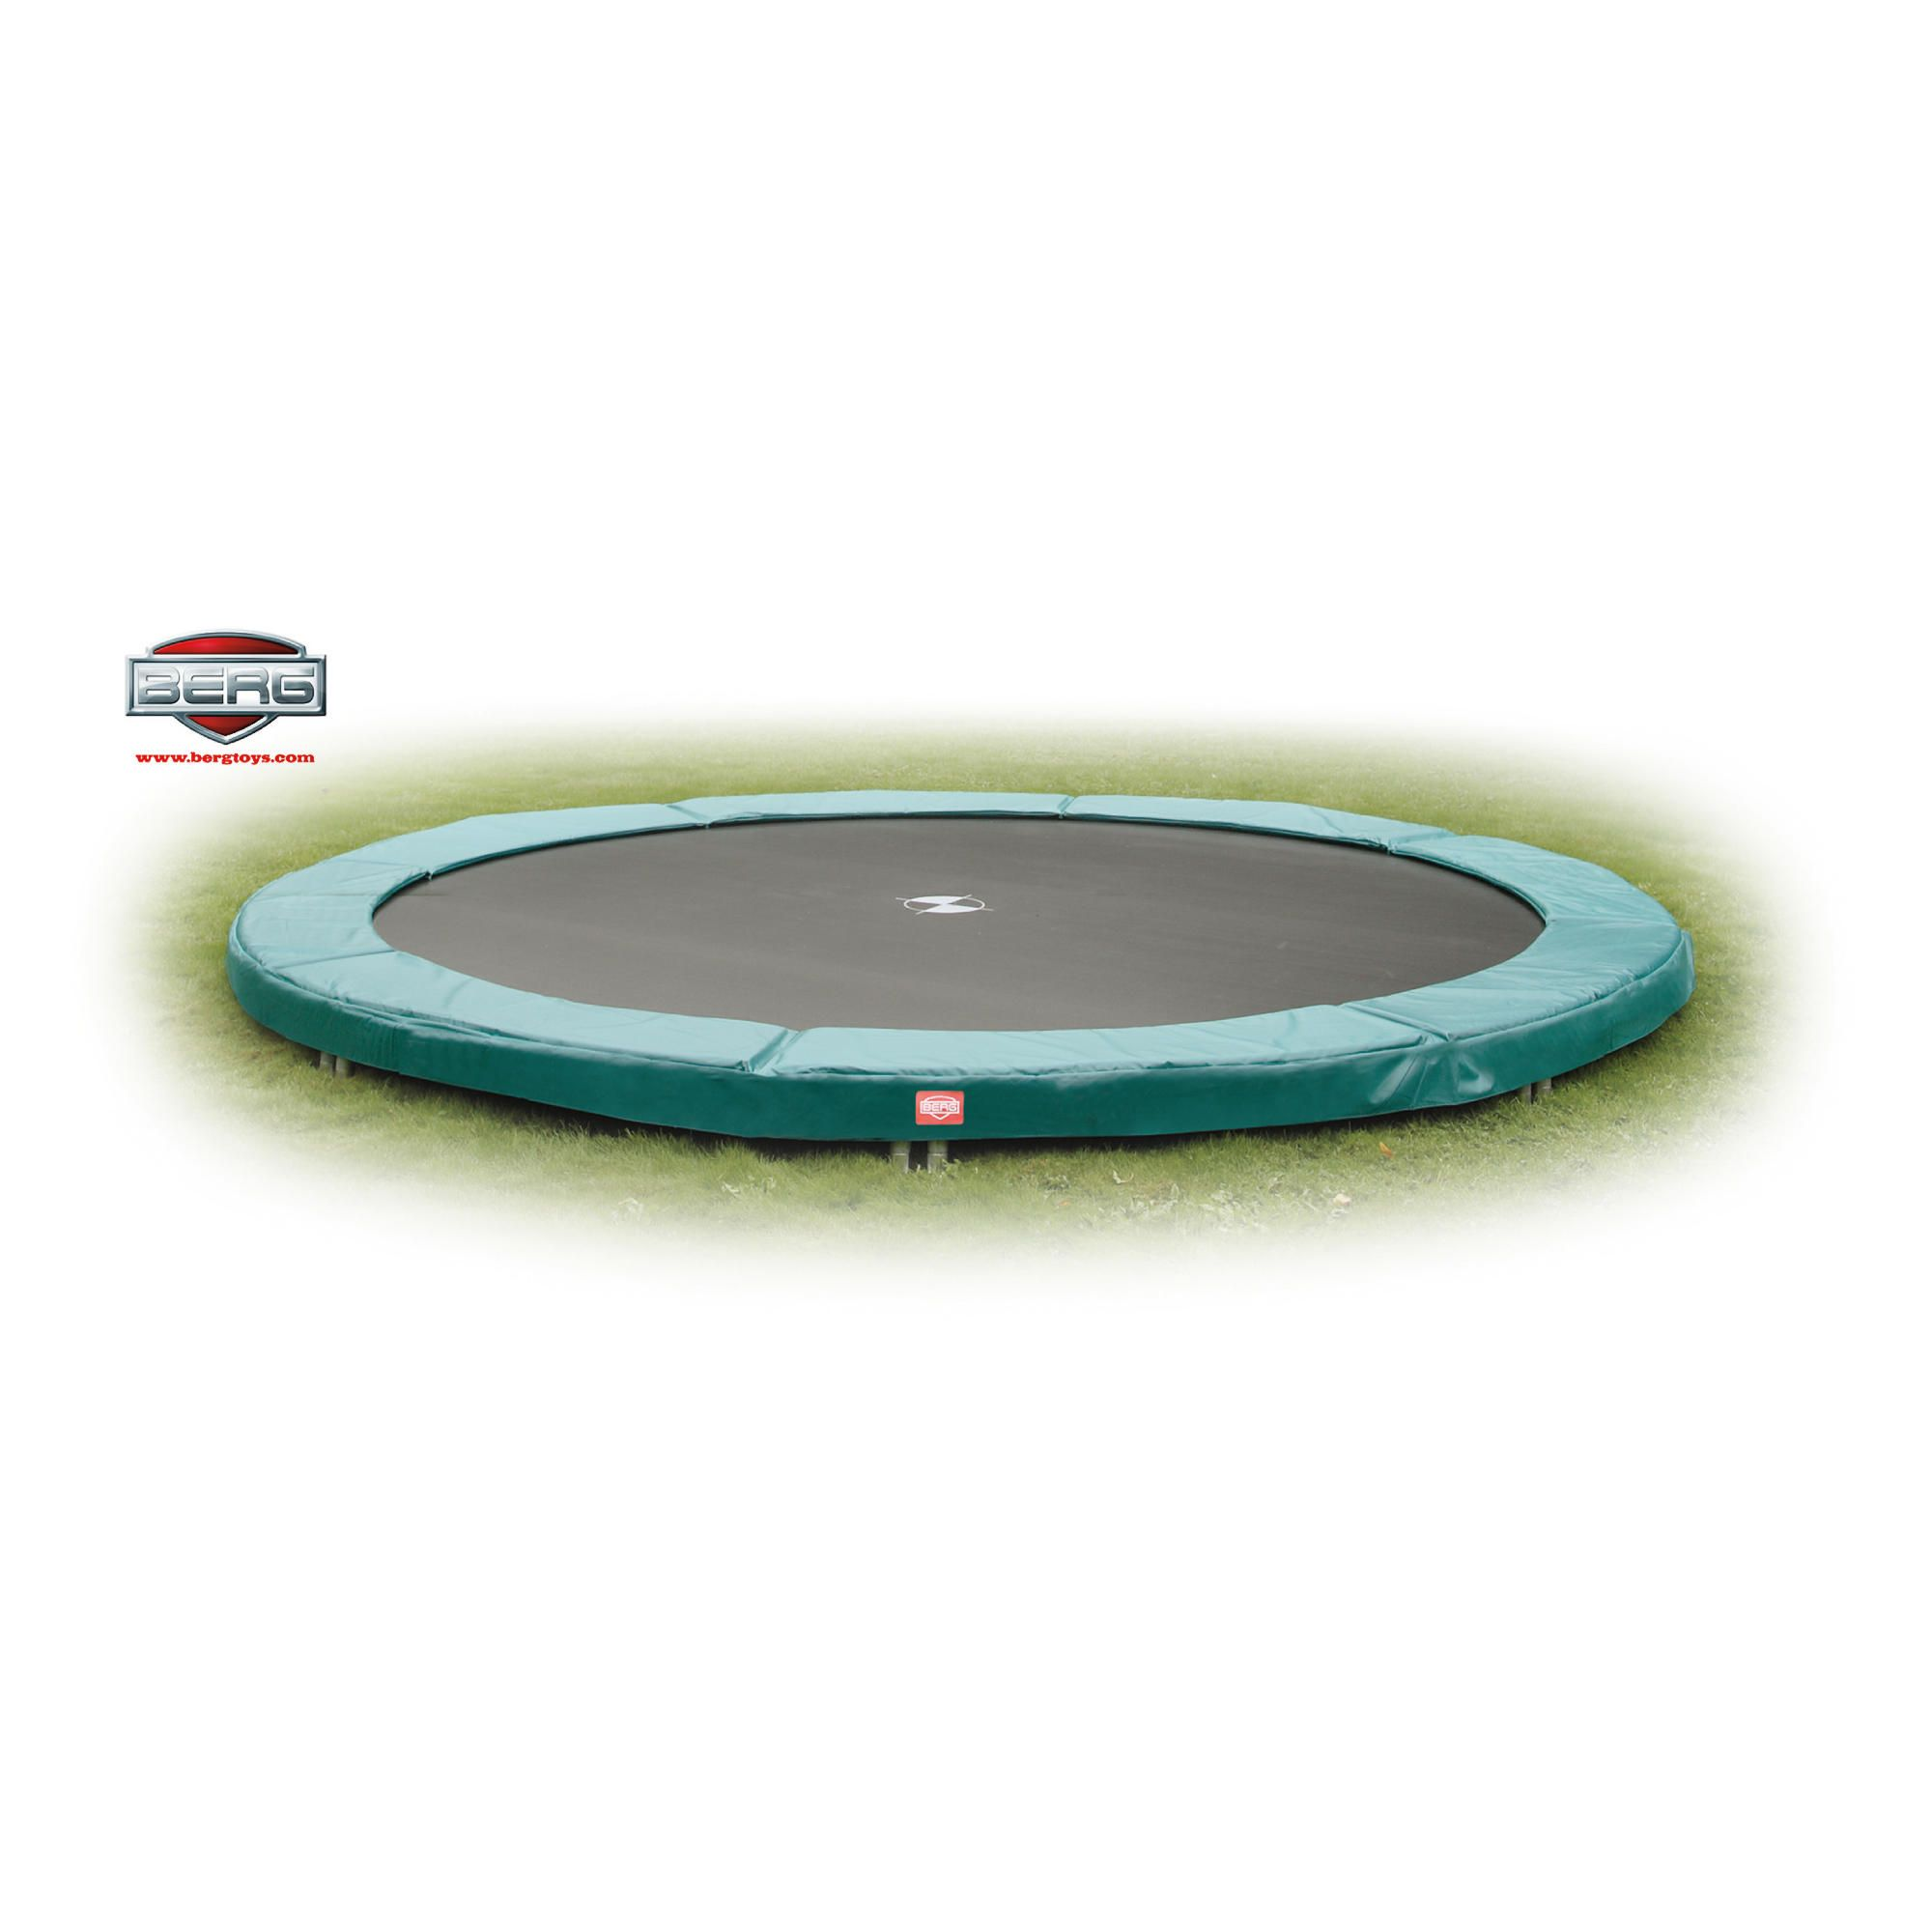 Berg 11ft In-ground Trampoline at Tesco Direct